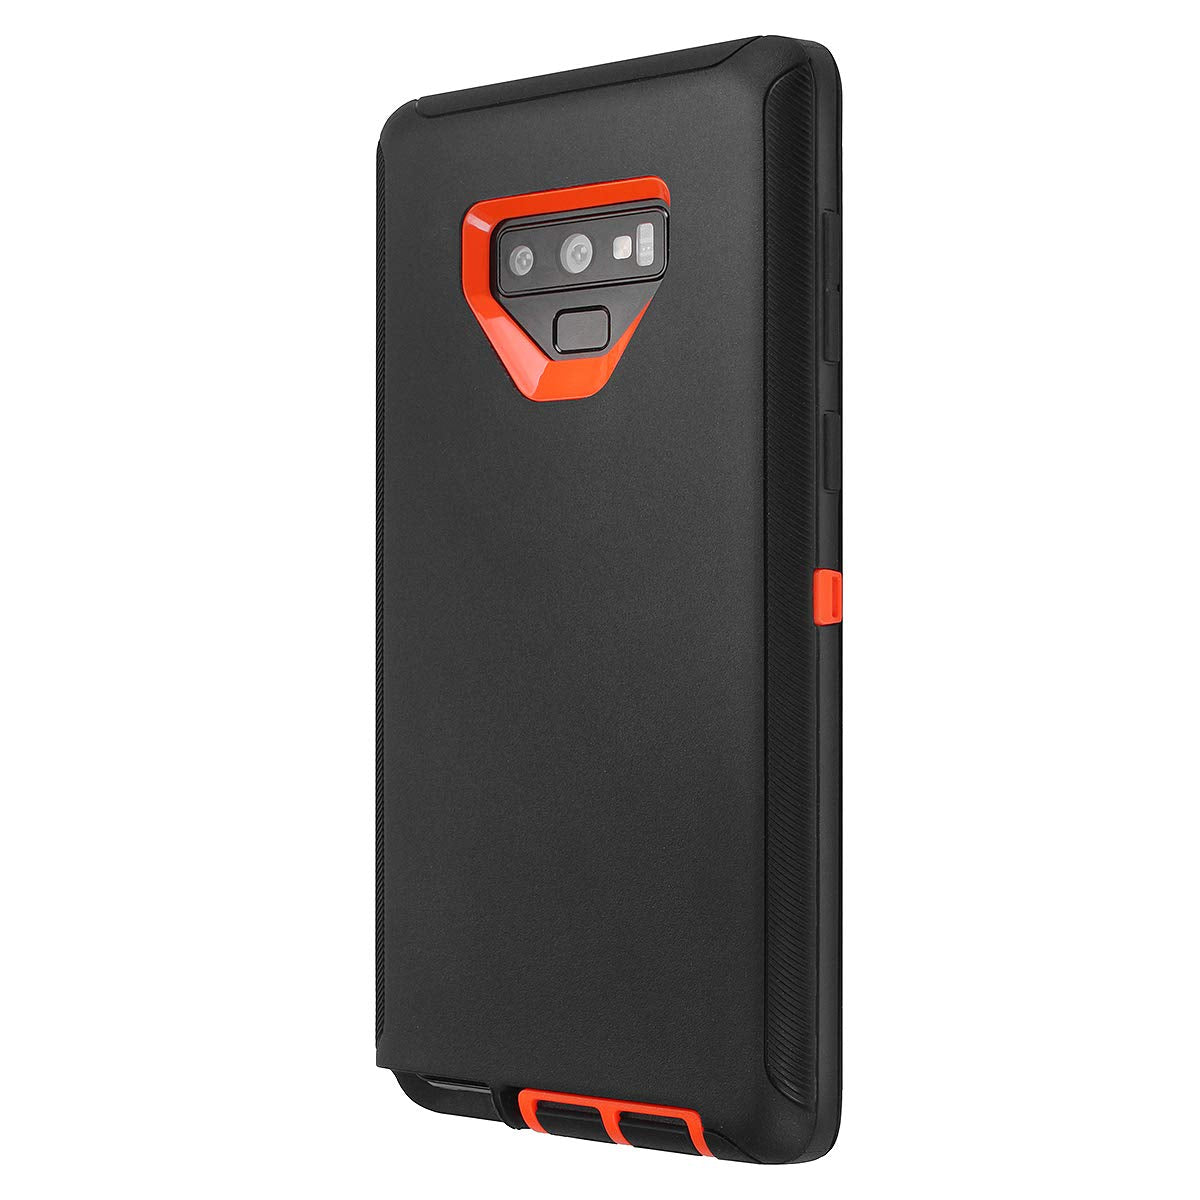 Galaxy Note 9 Schockproof Heavy Duty Tough 3 in 1 Hard PC+ Soft Silicone Impact Protection Dust Proof Full Body Protection Cover